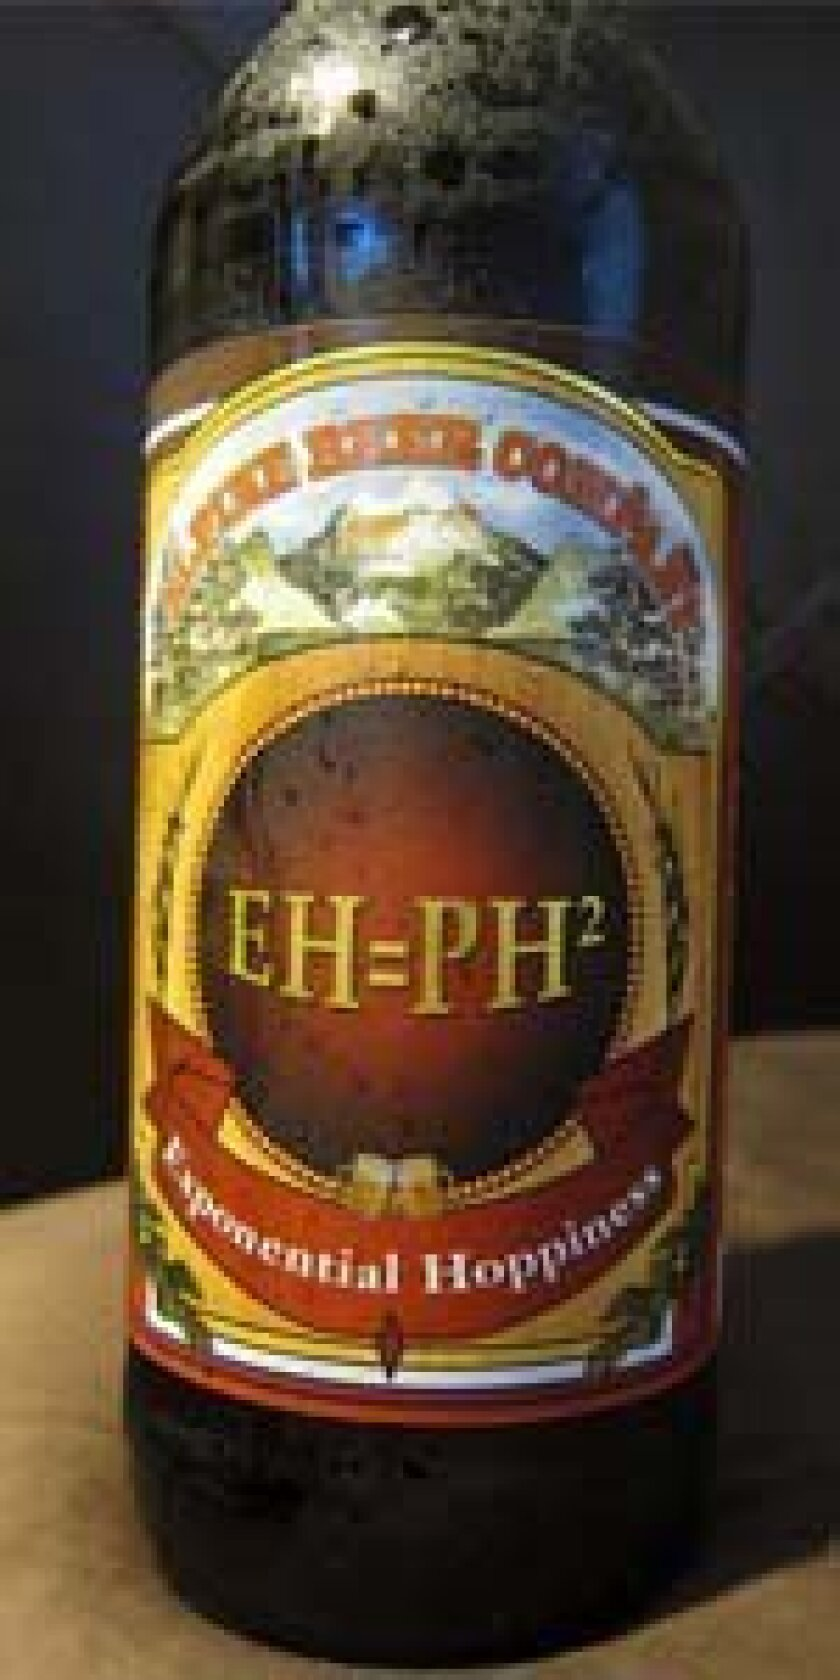 What's wrong with this ebay picture? Plenty, Alpine brewer insists